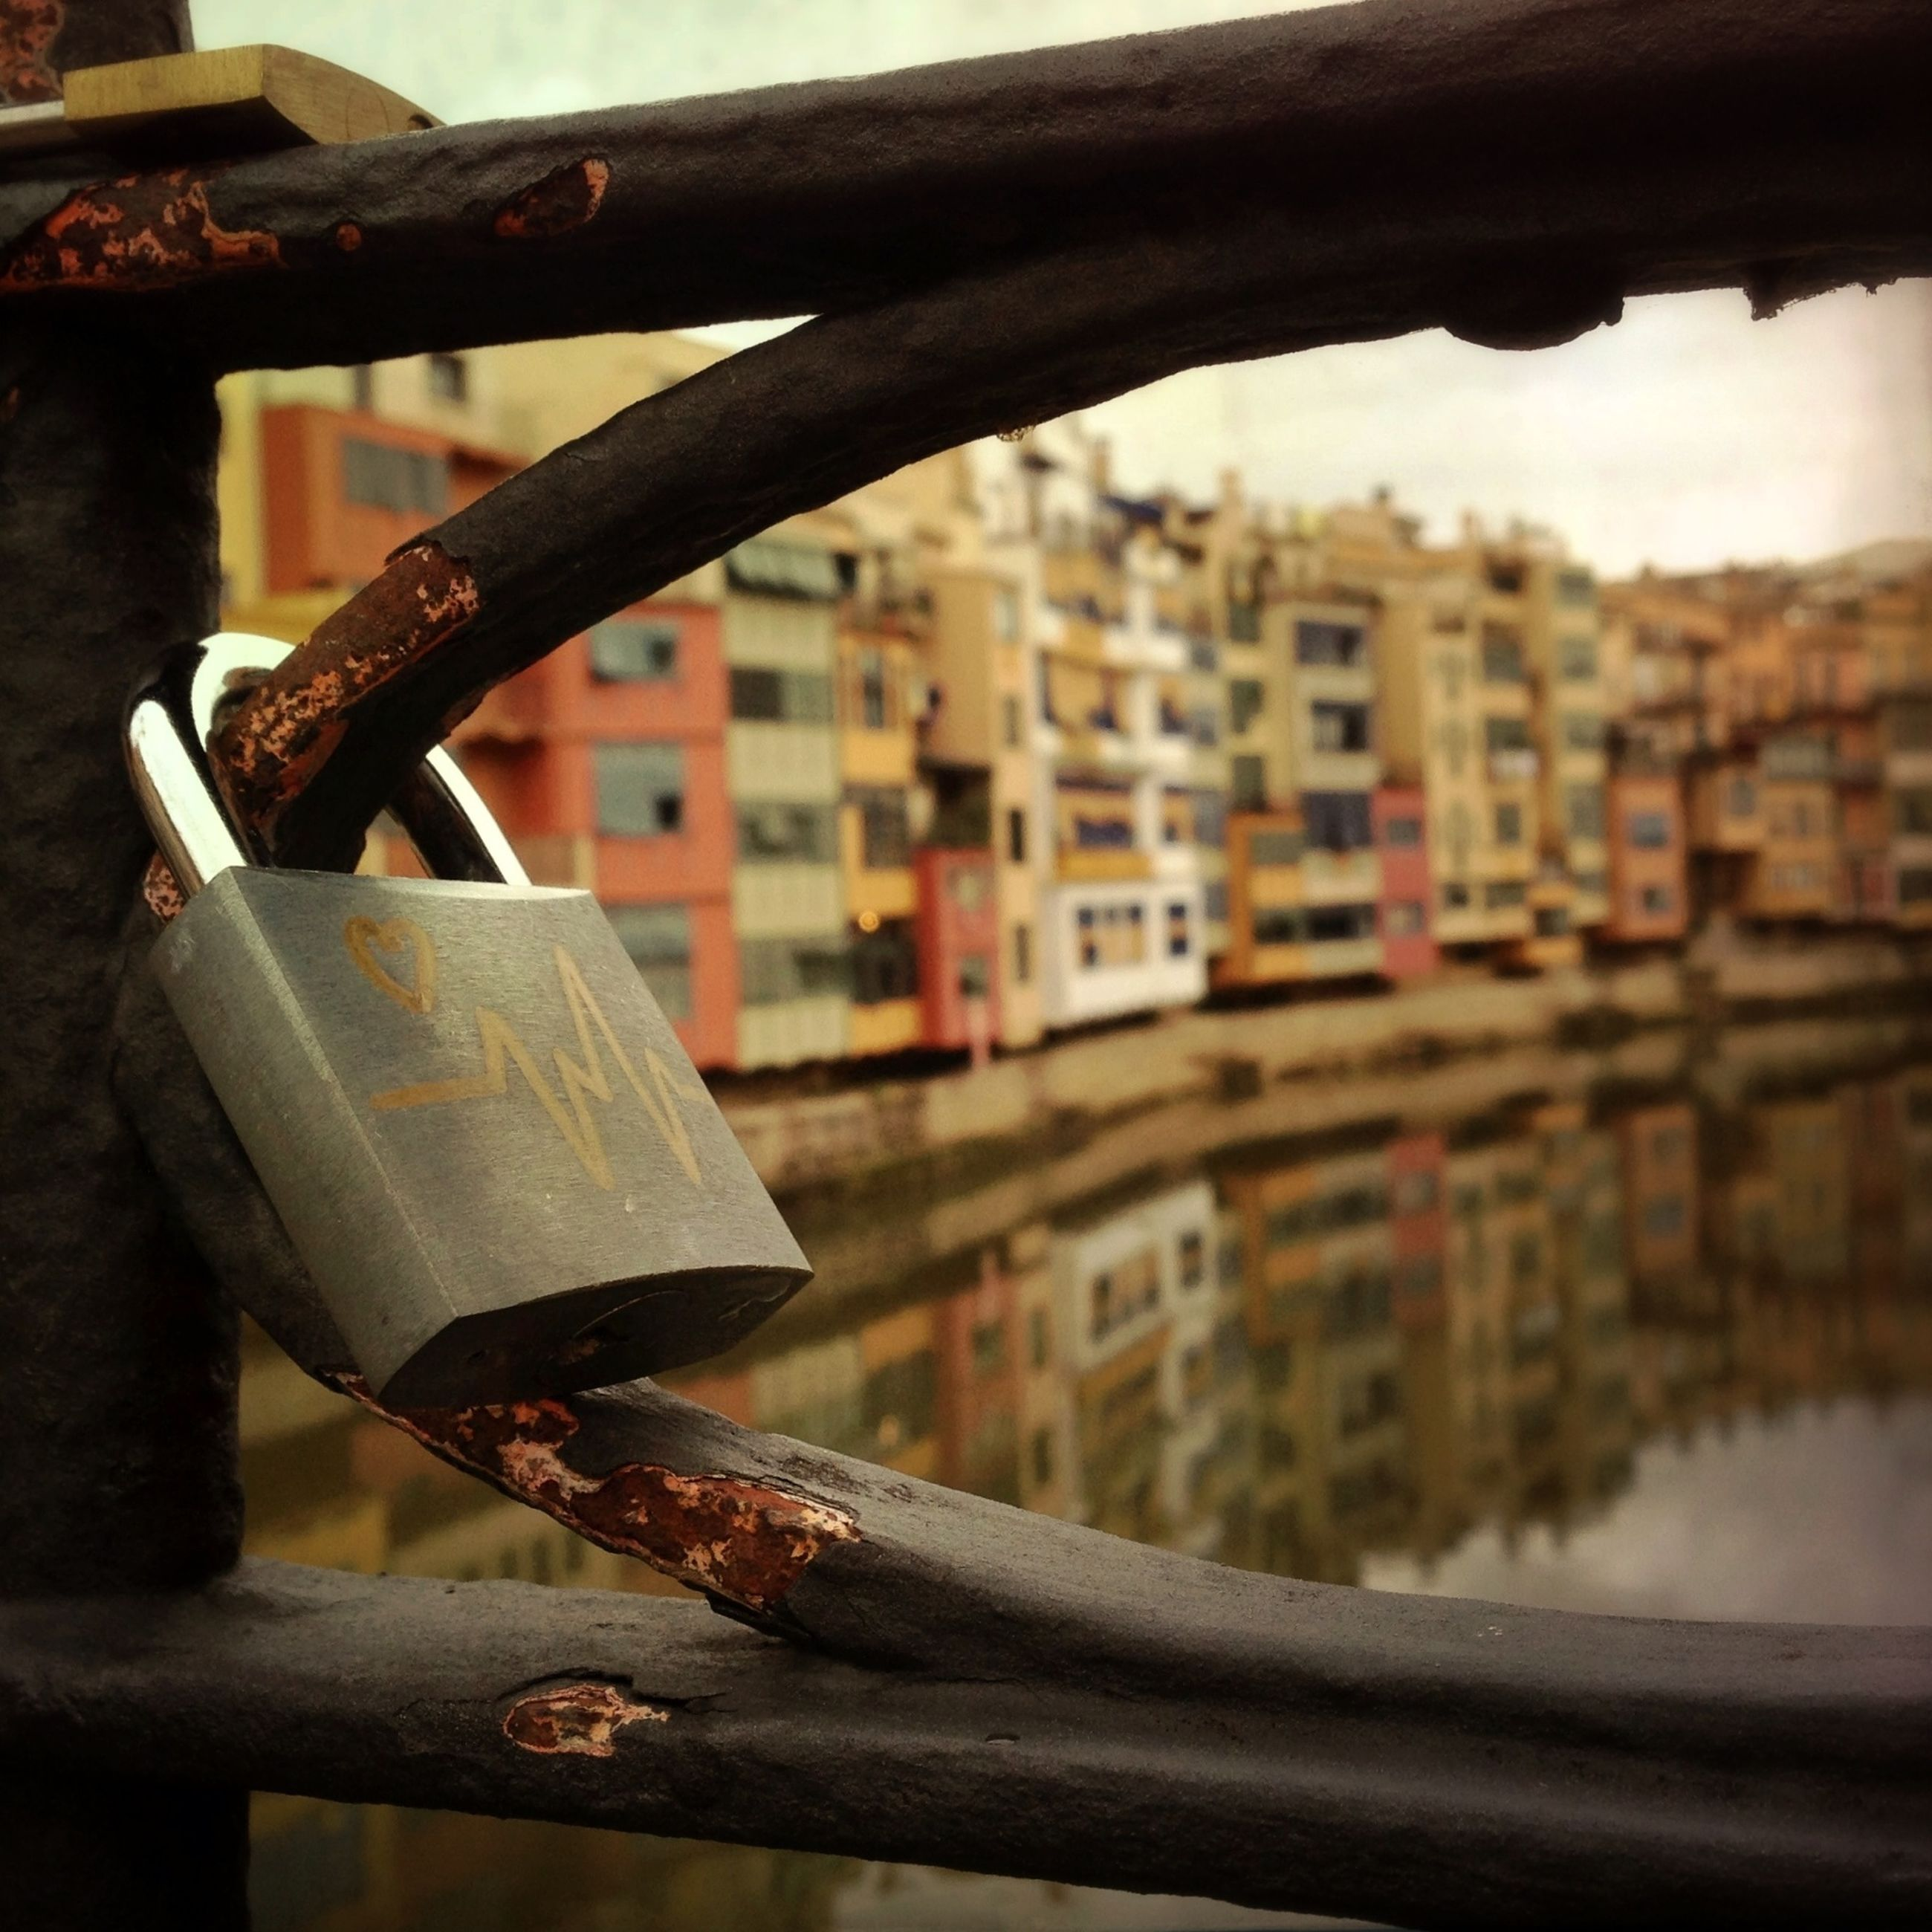 metal, focus on foreground, close-up, metallic, rusty, padlock, chain, built structure, building exterior, protection, safety, day, architecture, sky, outdoors, security, no people, hanging, old, fence